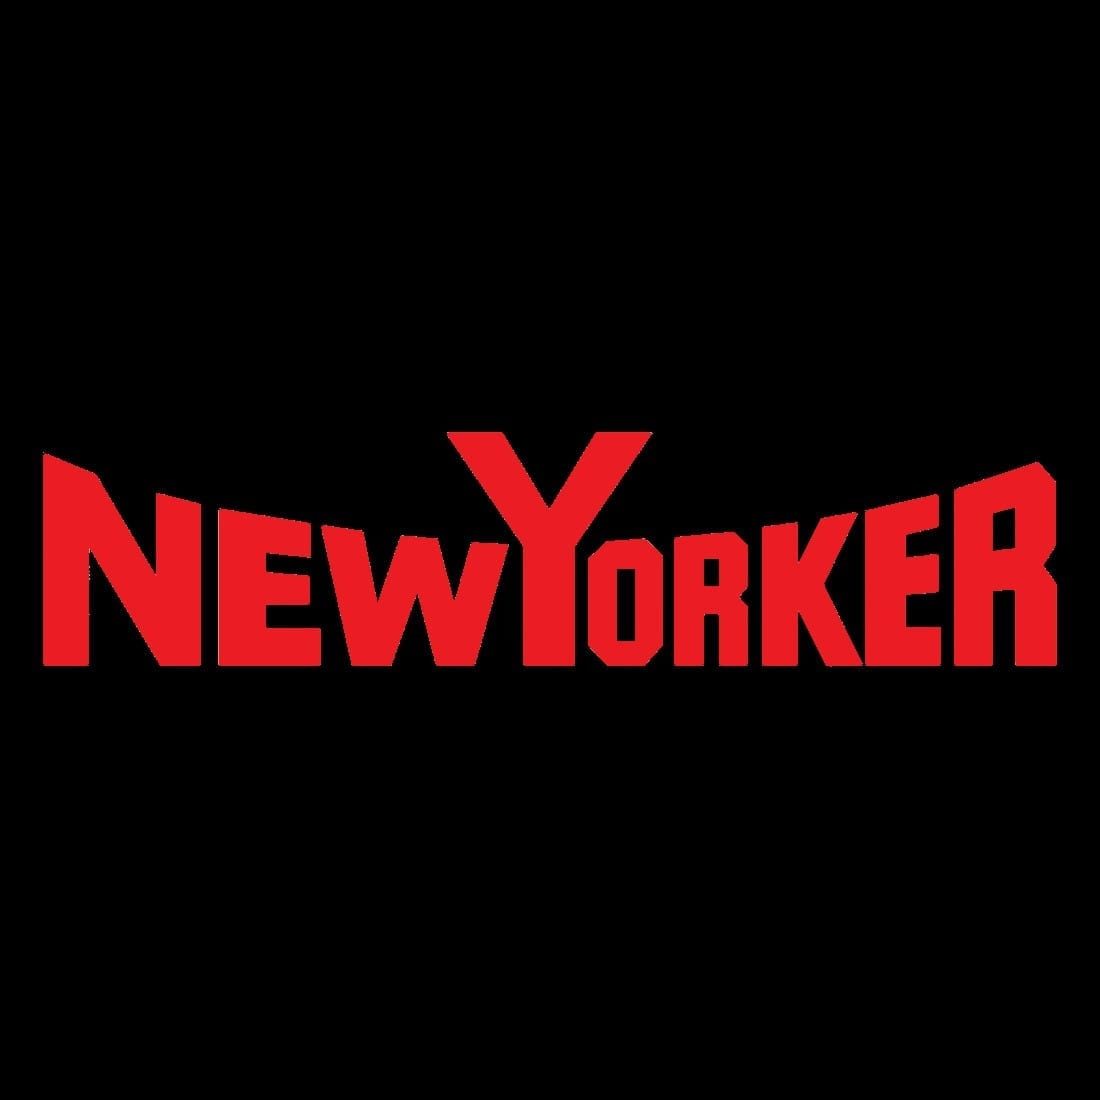 New Yorker: Final Sale up to 70%